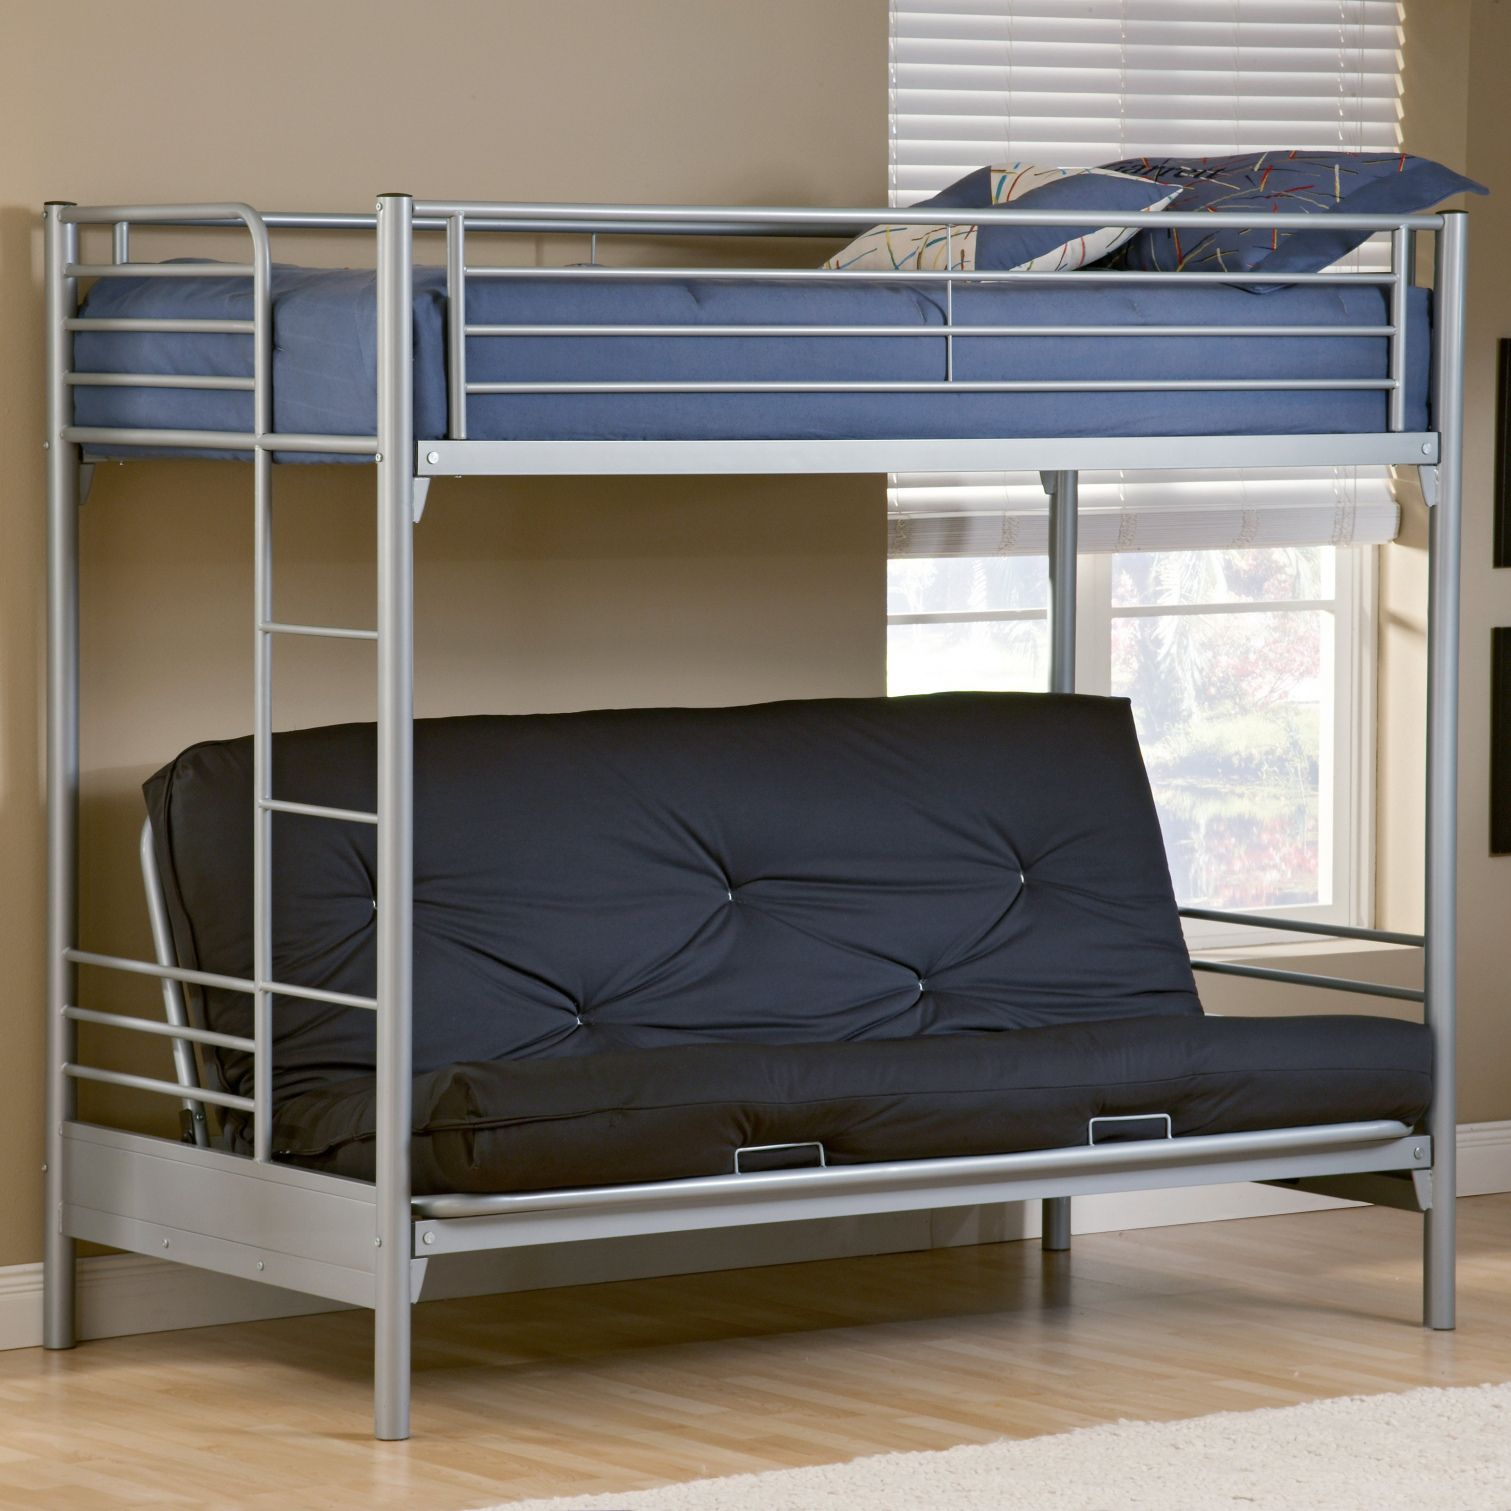 Futon Double Bunk Bed Top Rated Interior Paint Check More At Http